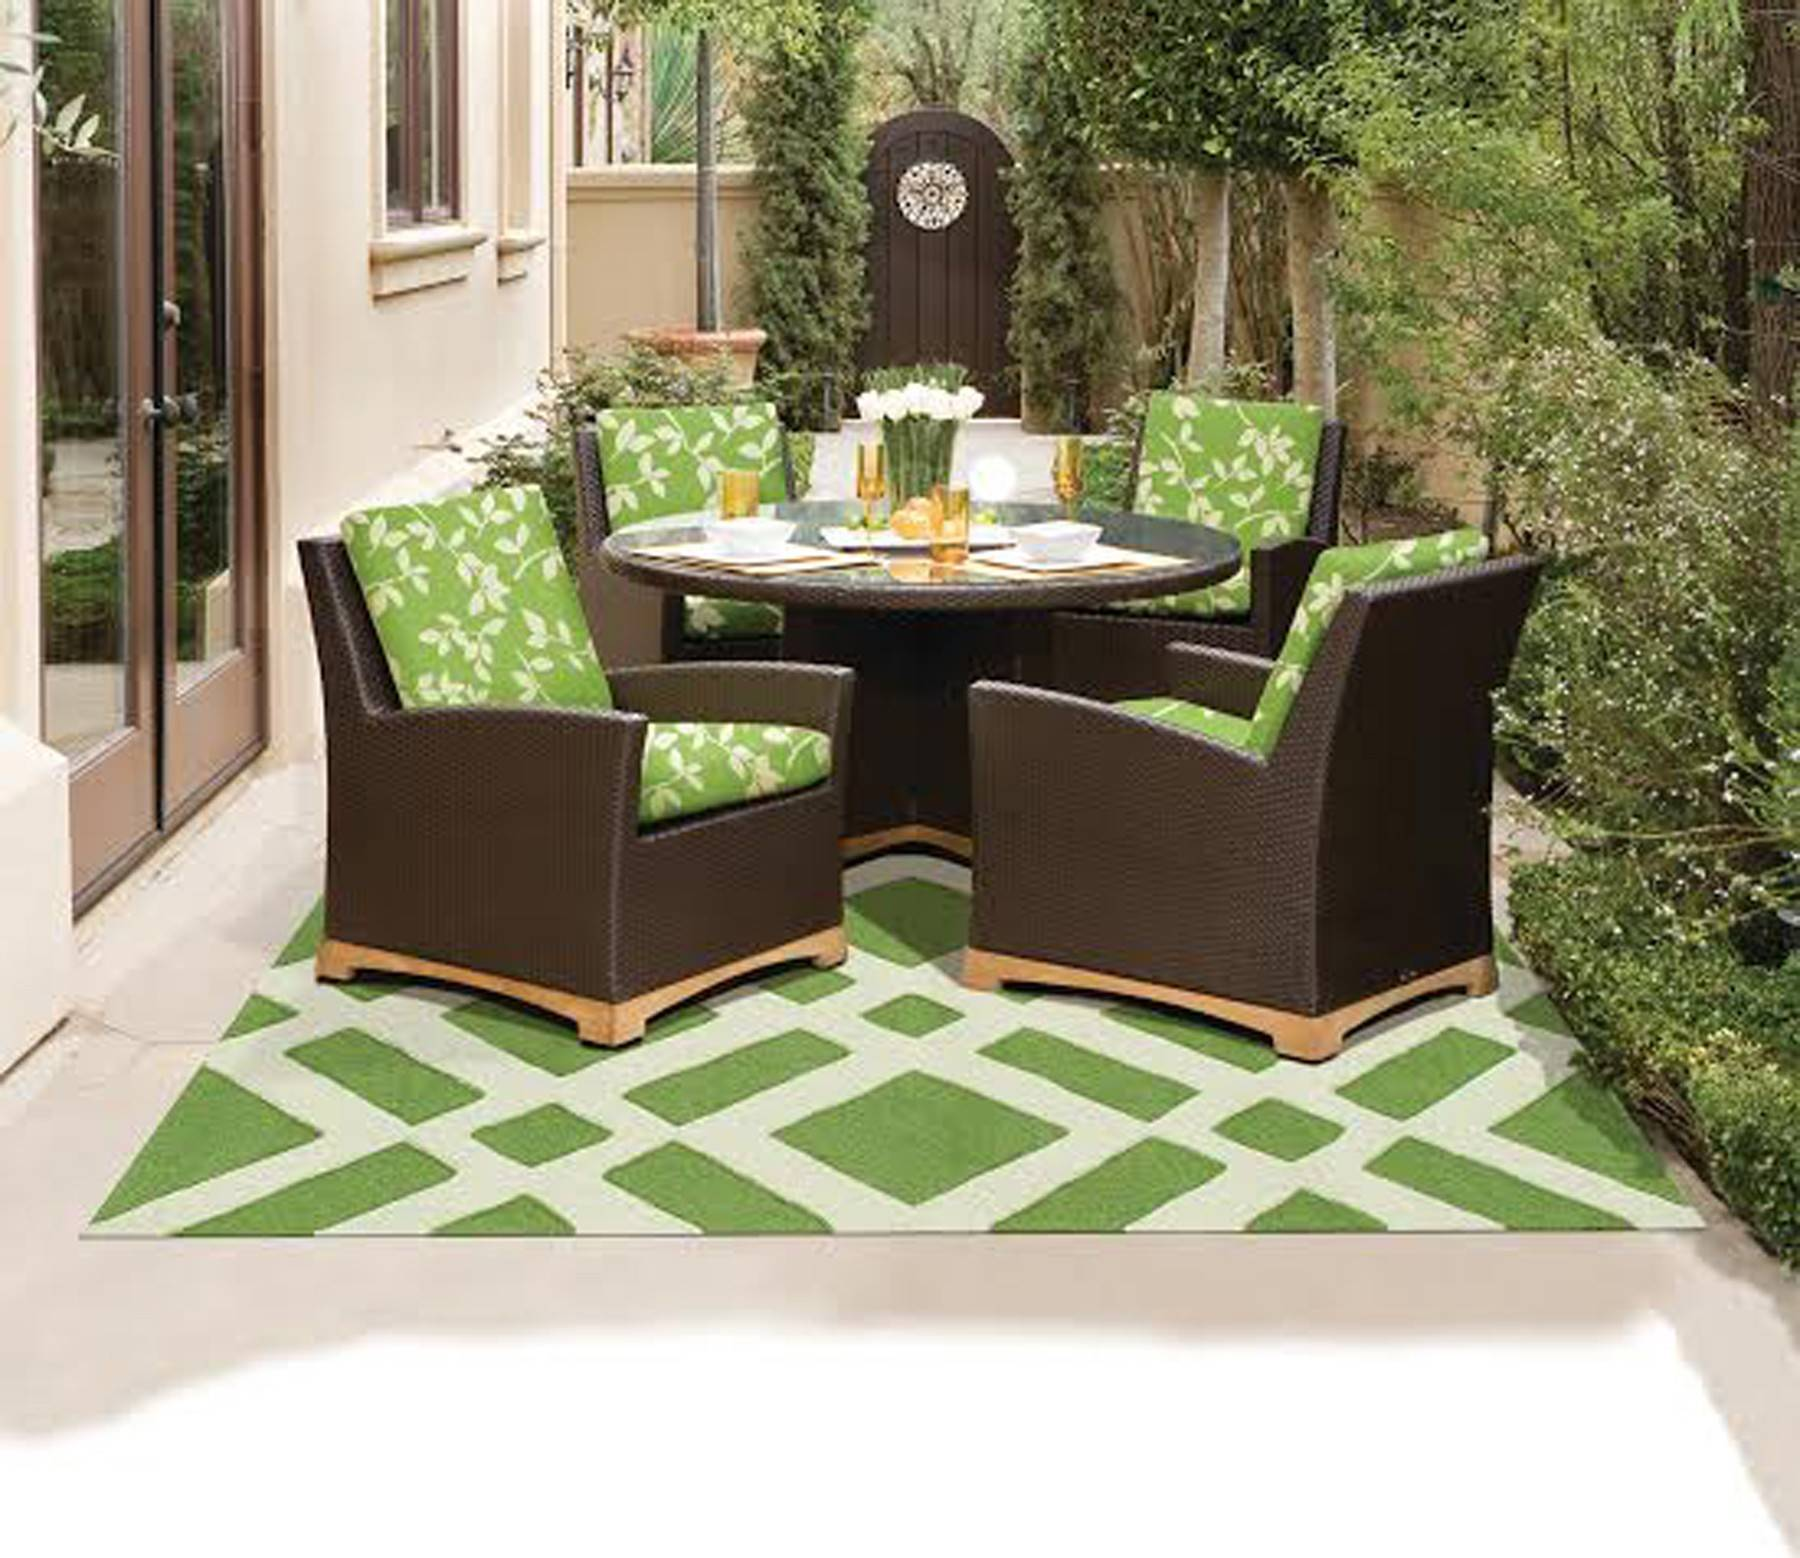 New fabrics, furniture and rugs shrug off the elements, making outdoor living as colorful and comfortable as, well, the great outdoors.